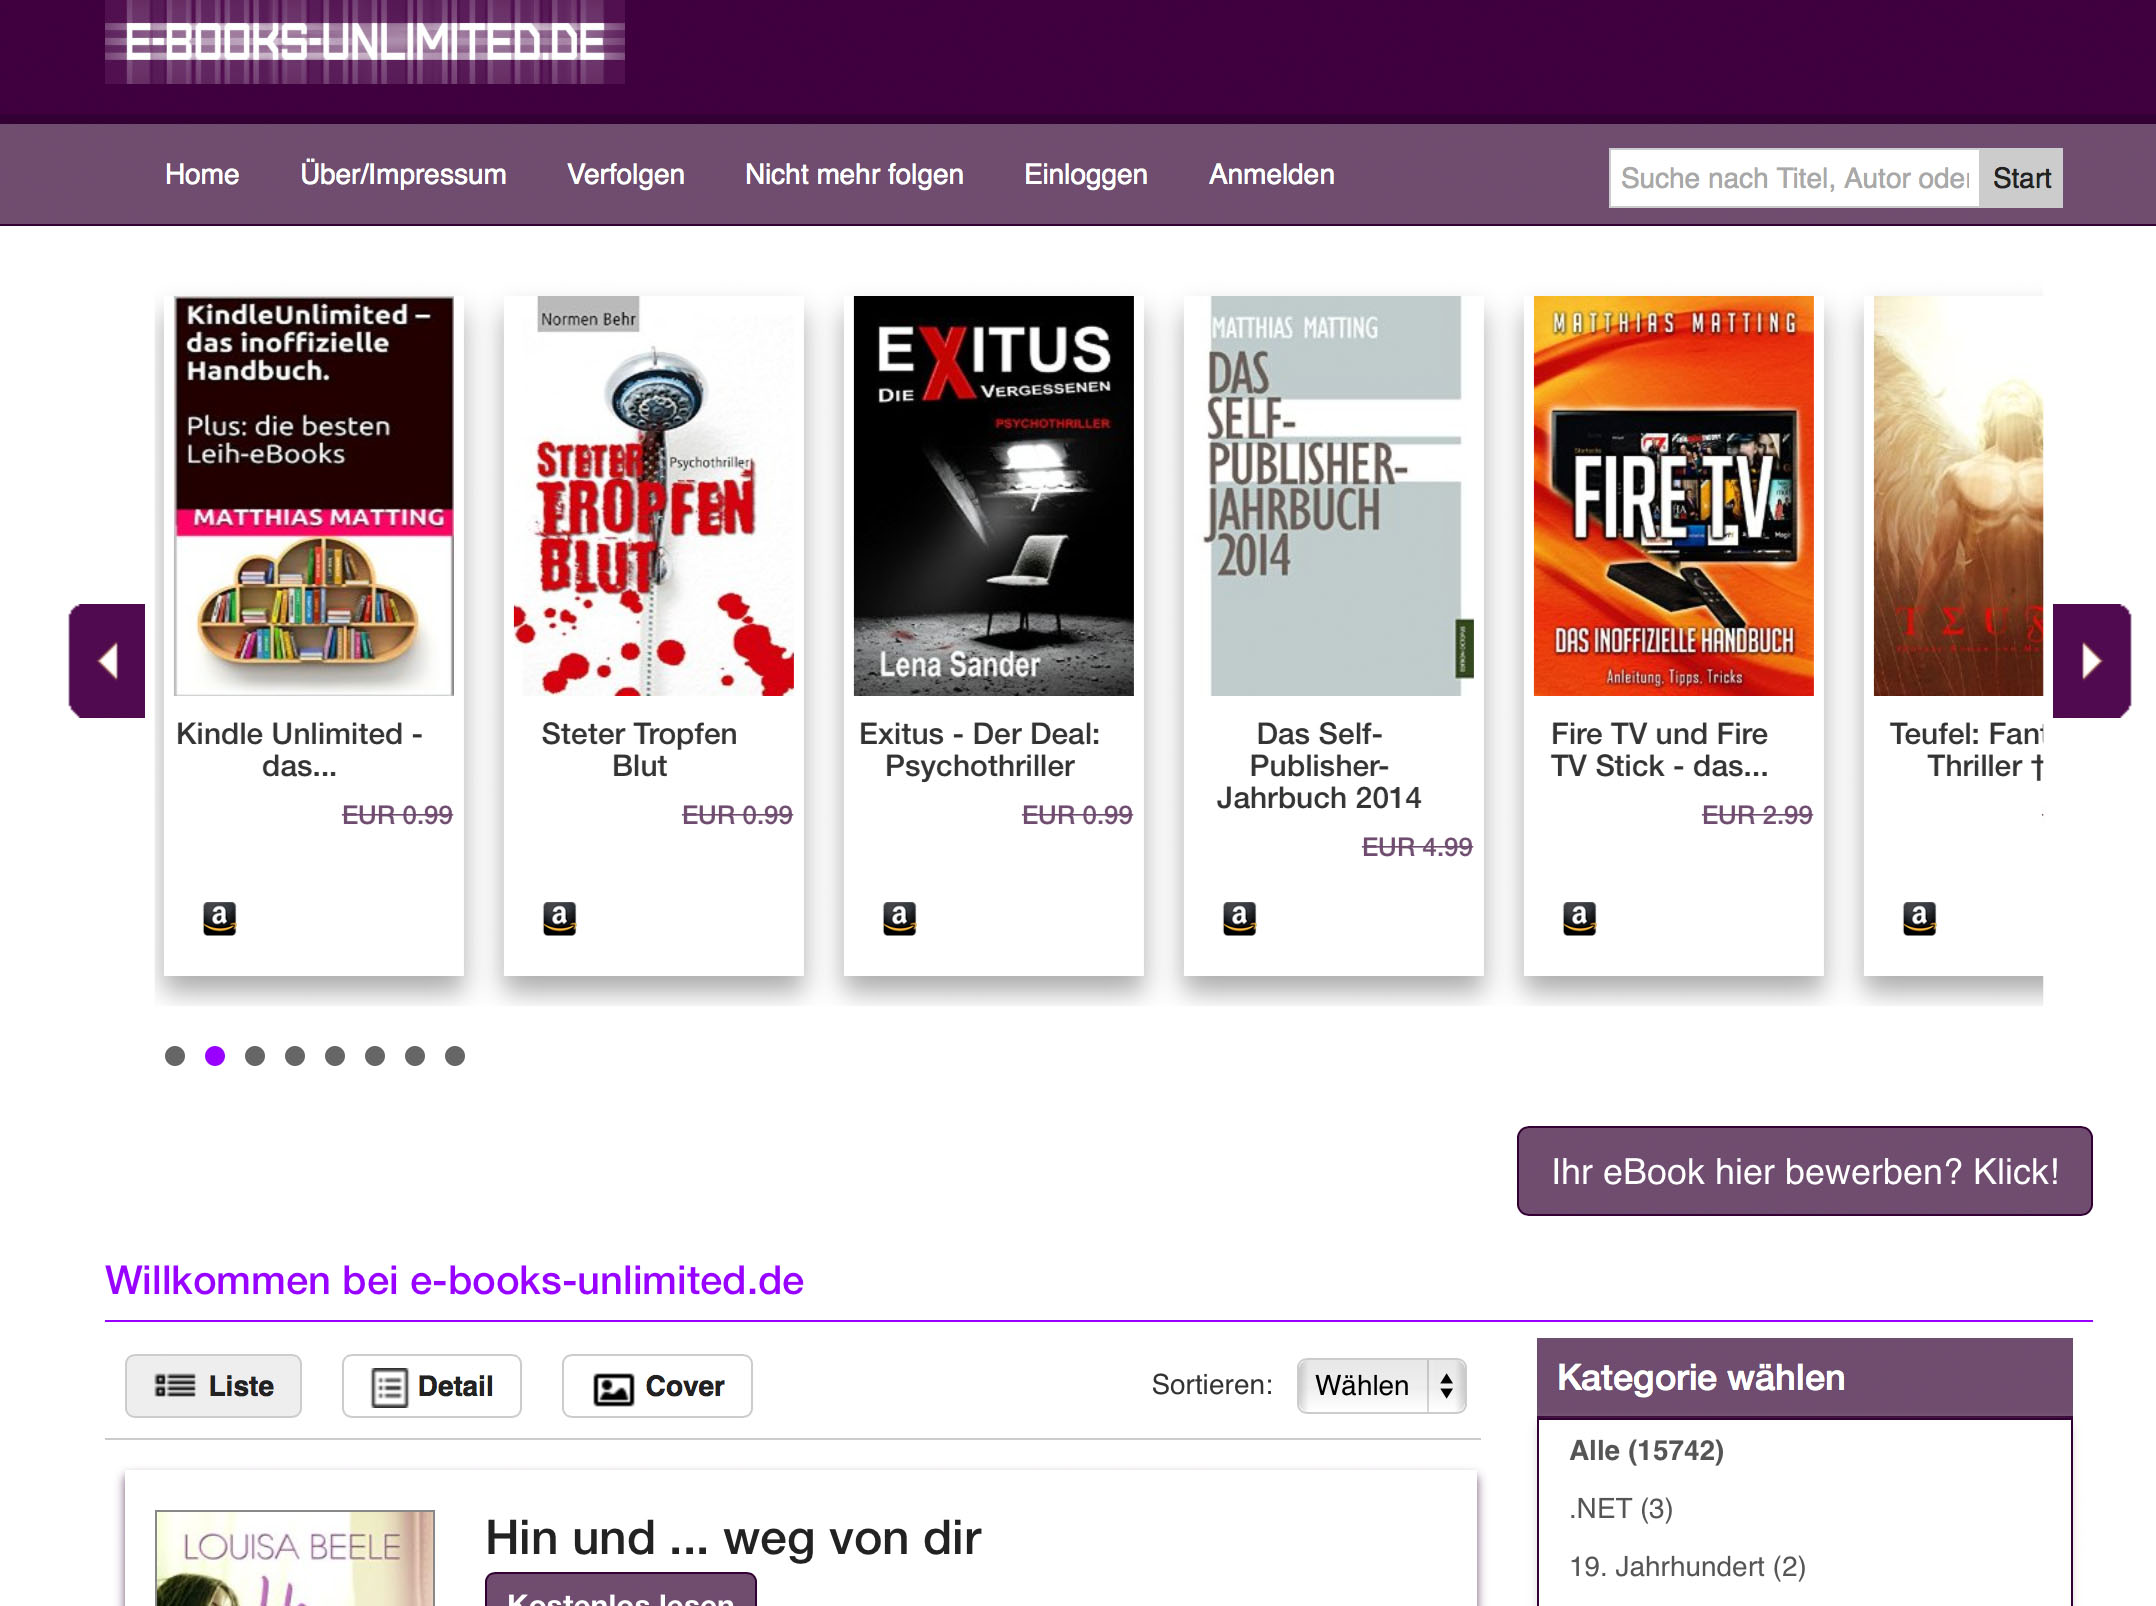 e-Books-Unlimited.de